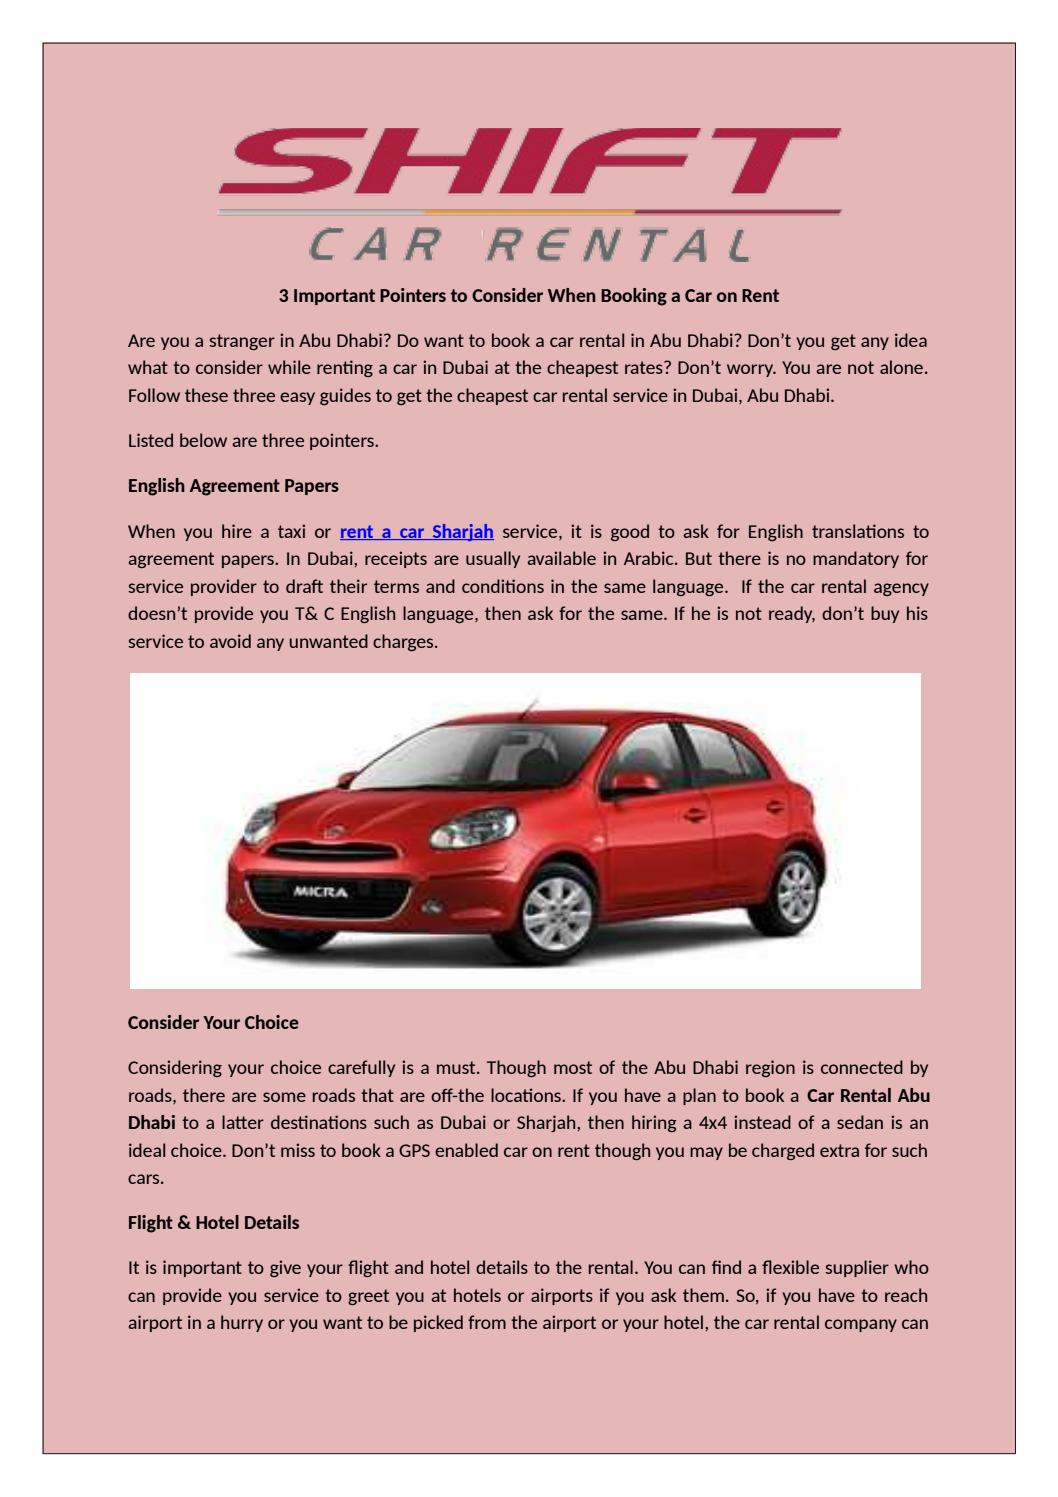 A Rental Car Agency Charges